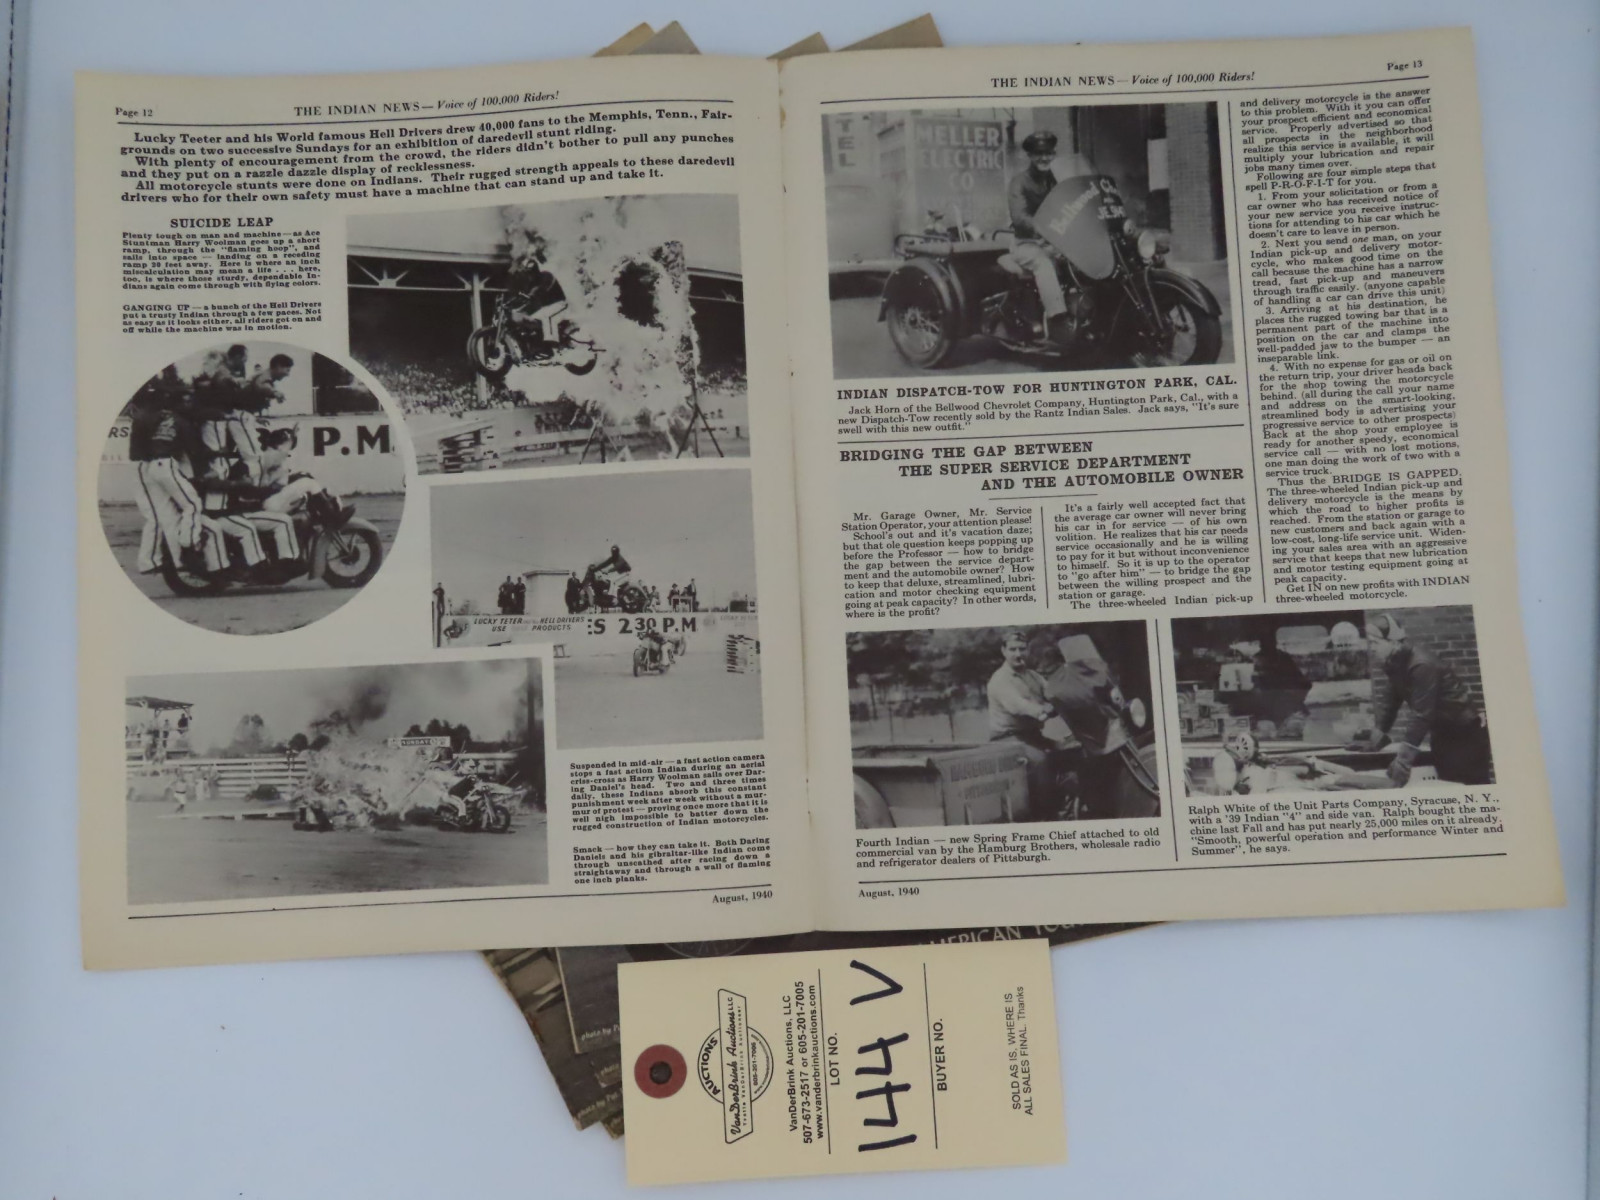 The Indian News - August 1940 - Image 2